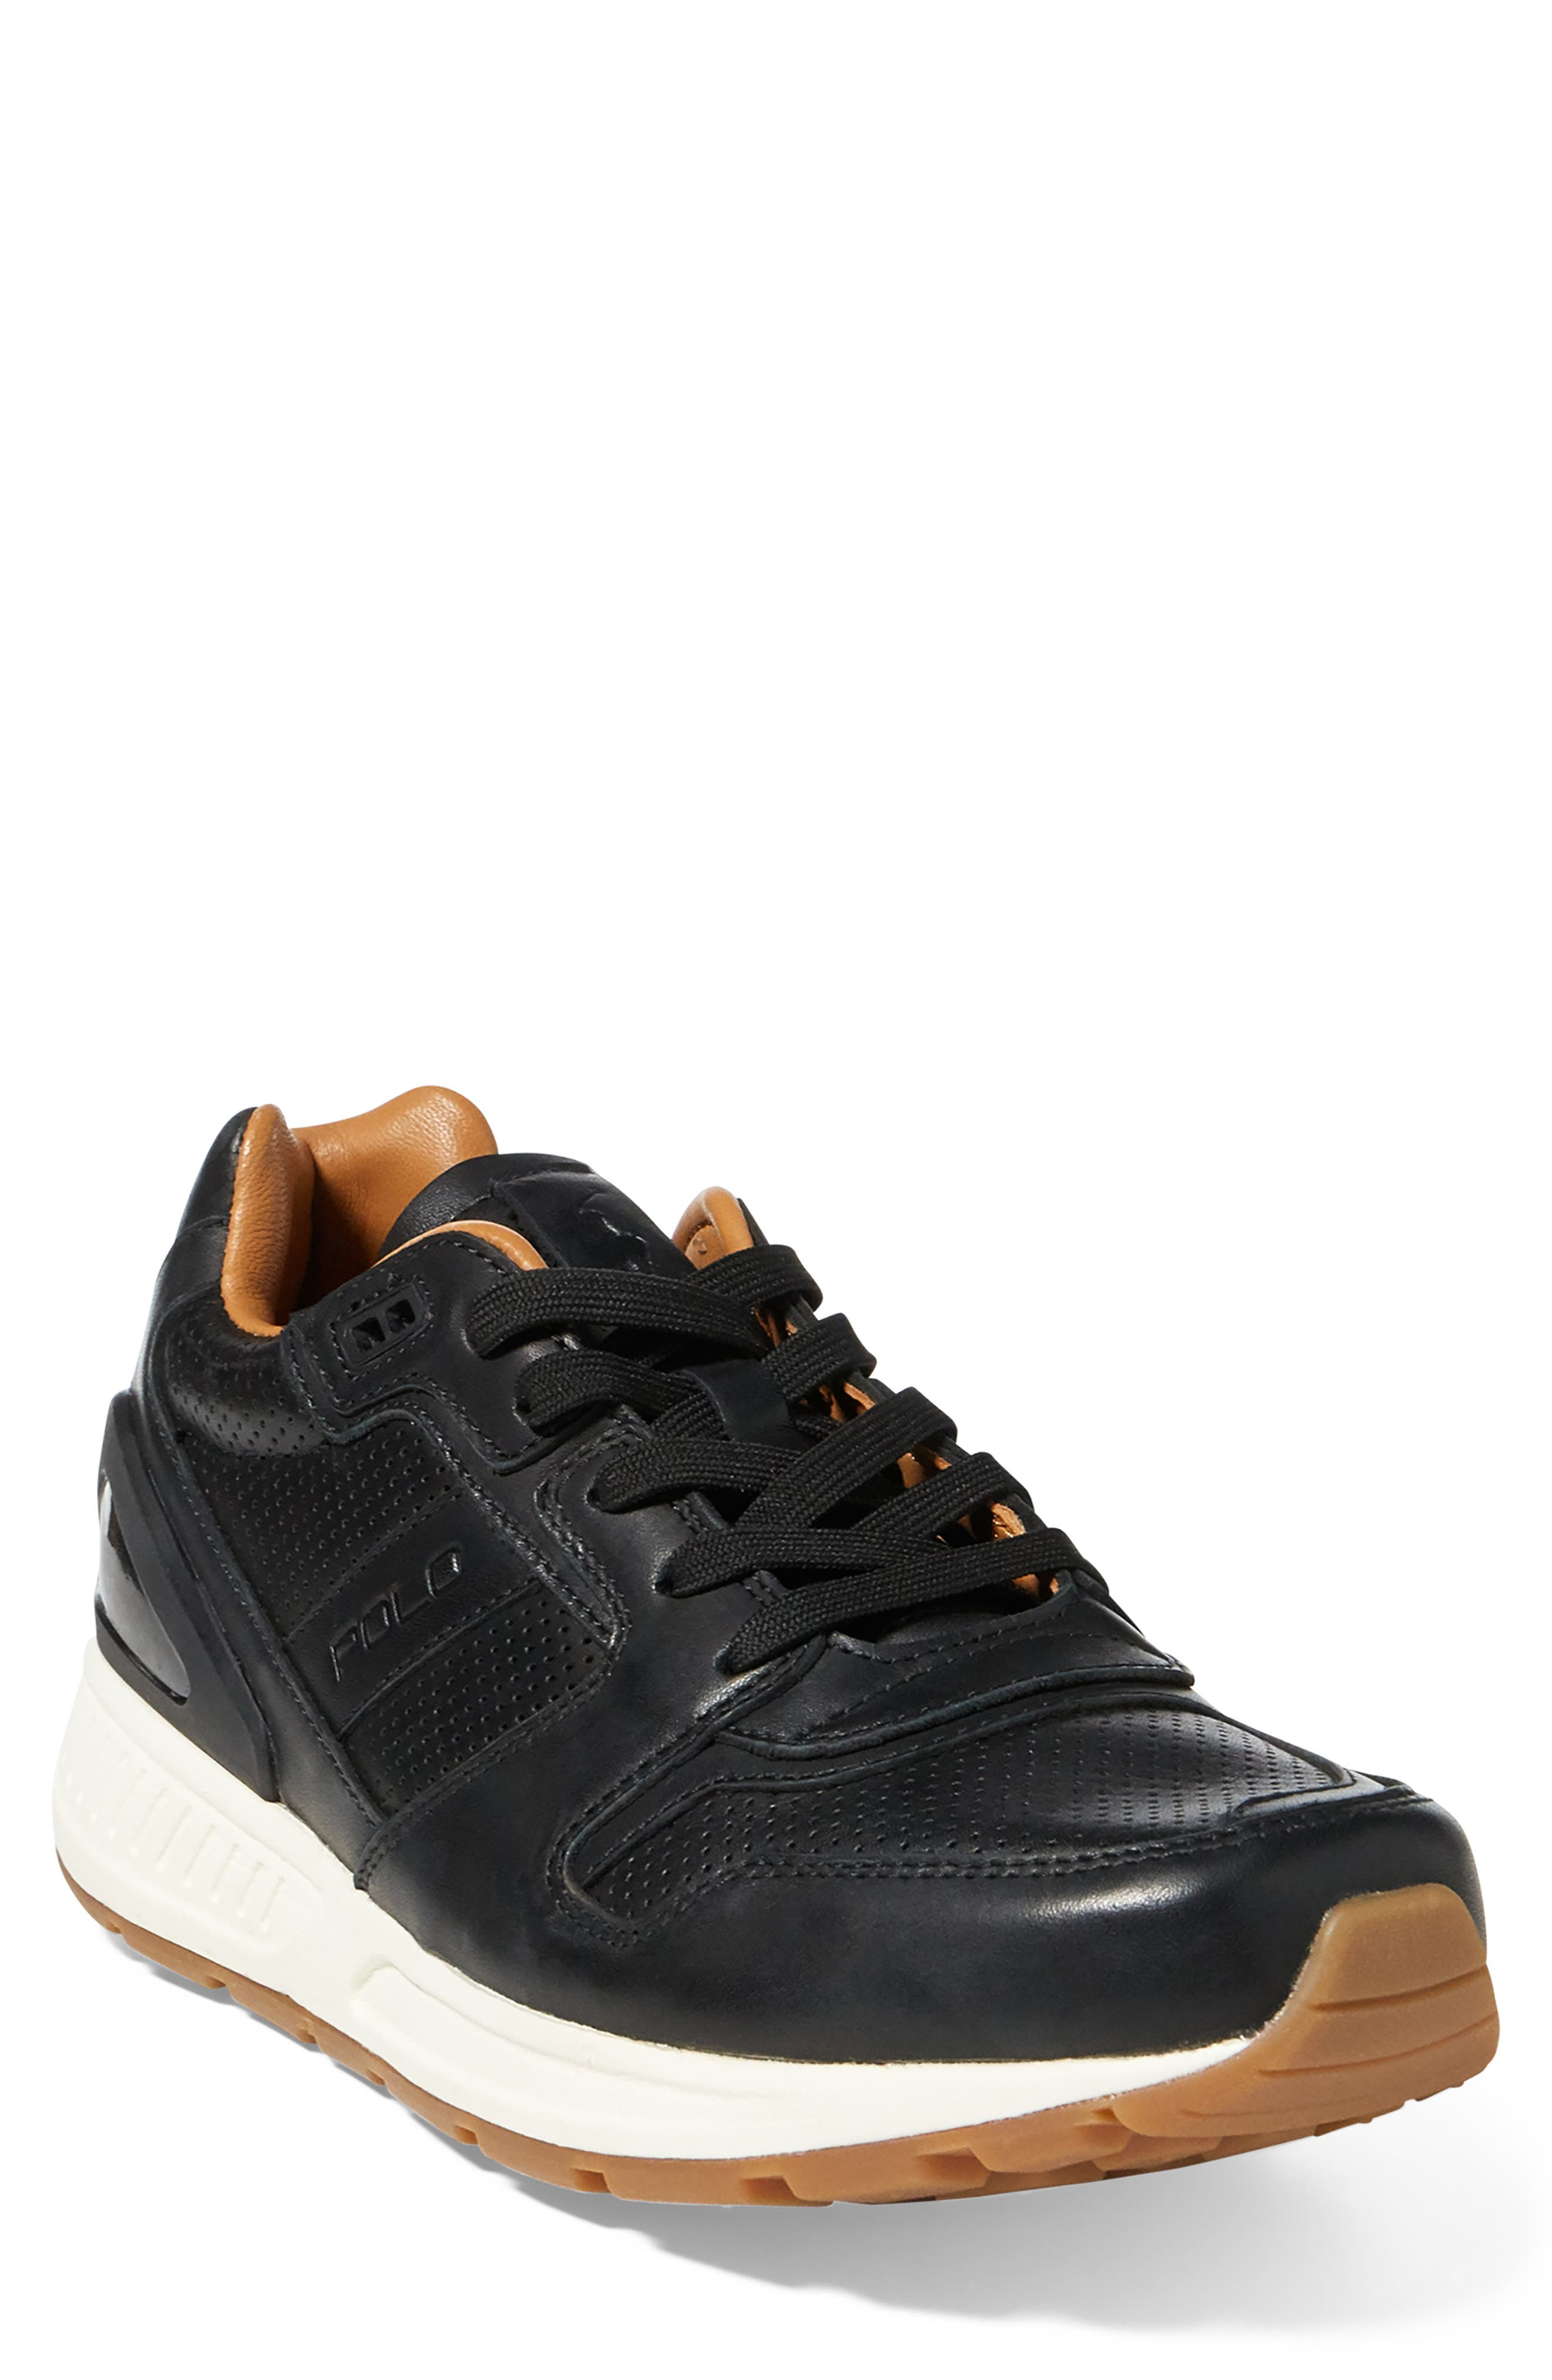 Train 100 Sneaker,                             Main thumbnail 1, color,                             BLACK LEATHER